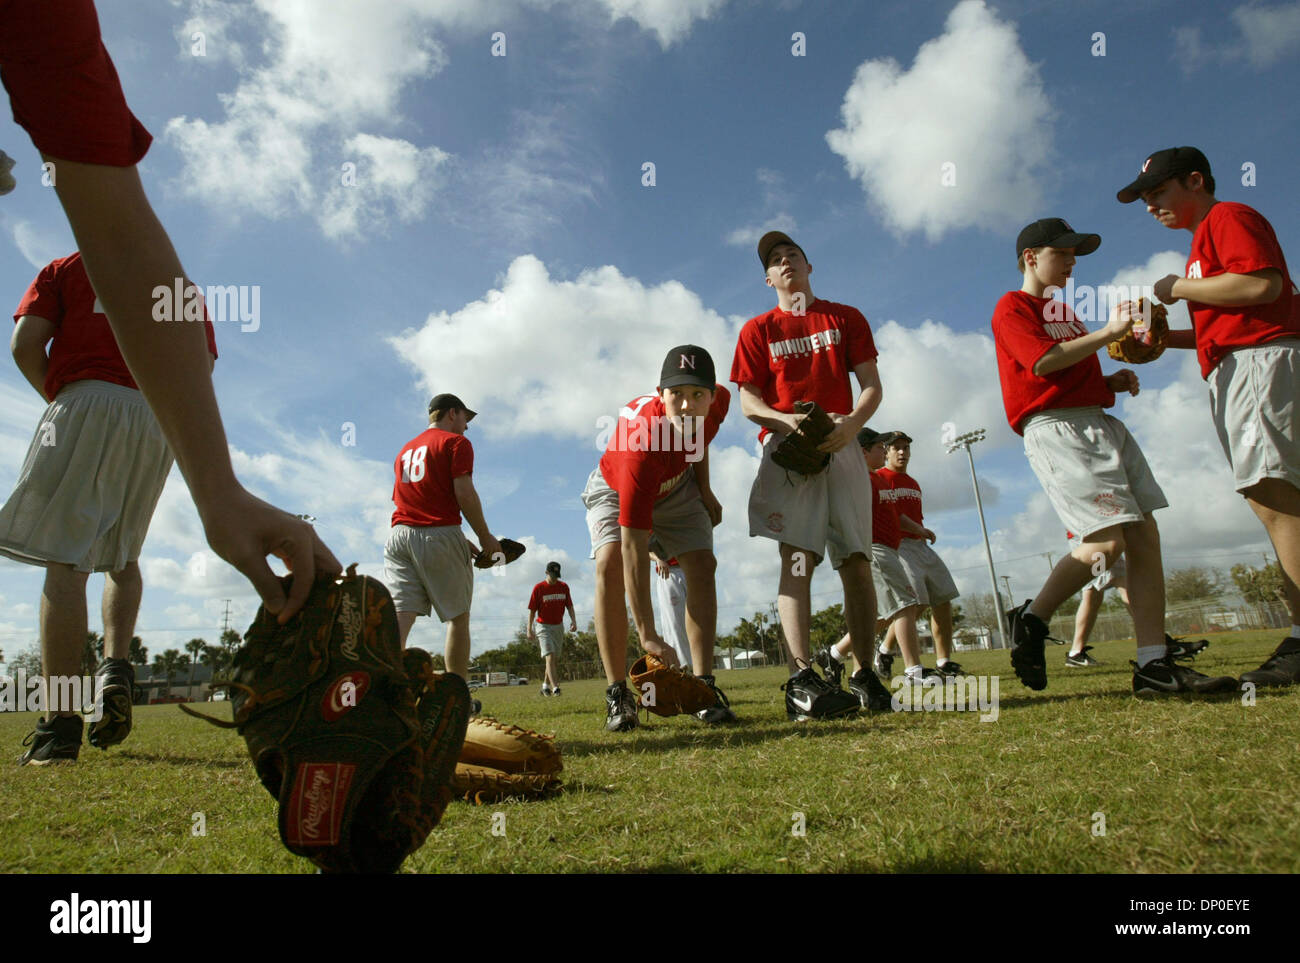 Mar 14, 2006; Stuart, FL, USA; For 26 years, the Newark Academy baseball team has come to Florida to get ready for the Spring baseball season.  Head coach Jon Downs said that this year, 23 boys between the  ages of 14-18 made the trip.  The school, located in Livingston, New Jersey, will be practicing at facilities throughout the Treasure Coast during their 10-day stay and will pla - Stock Image